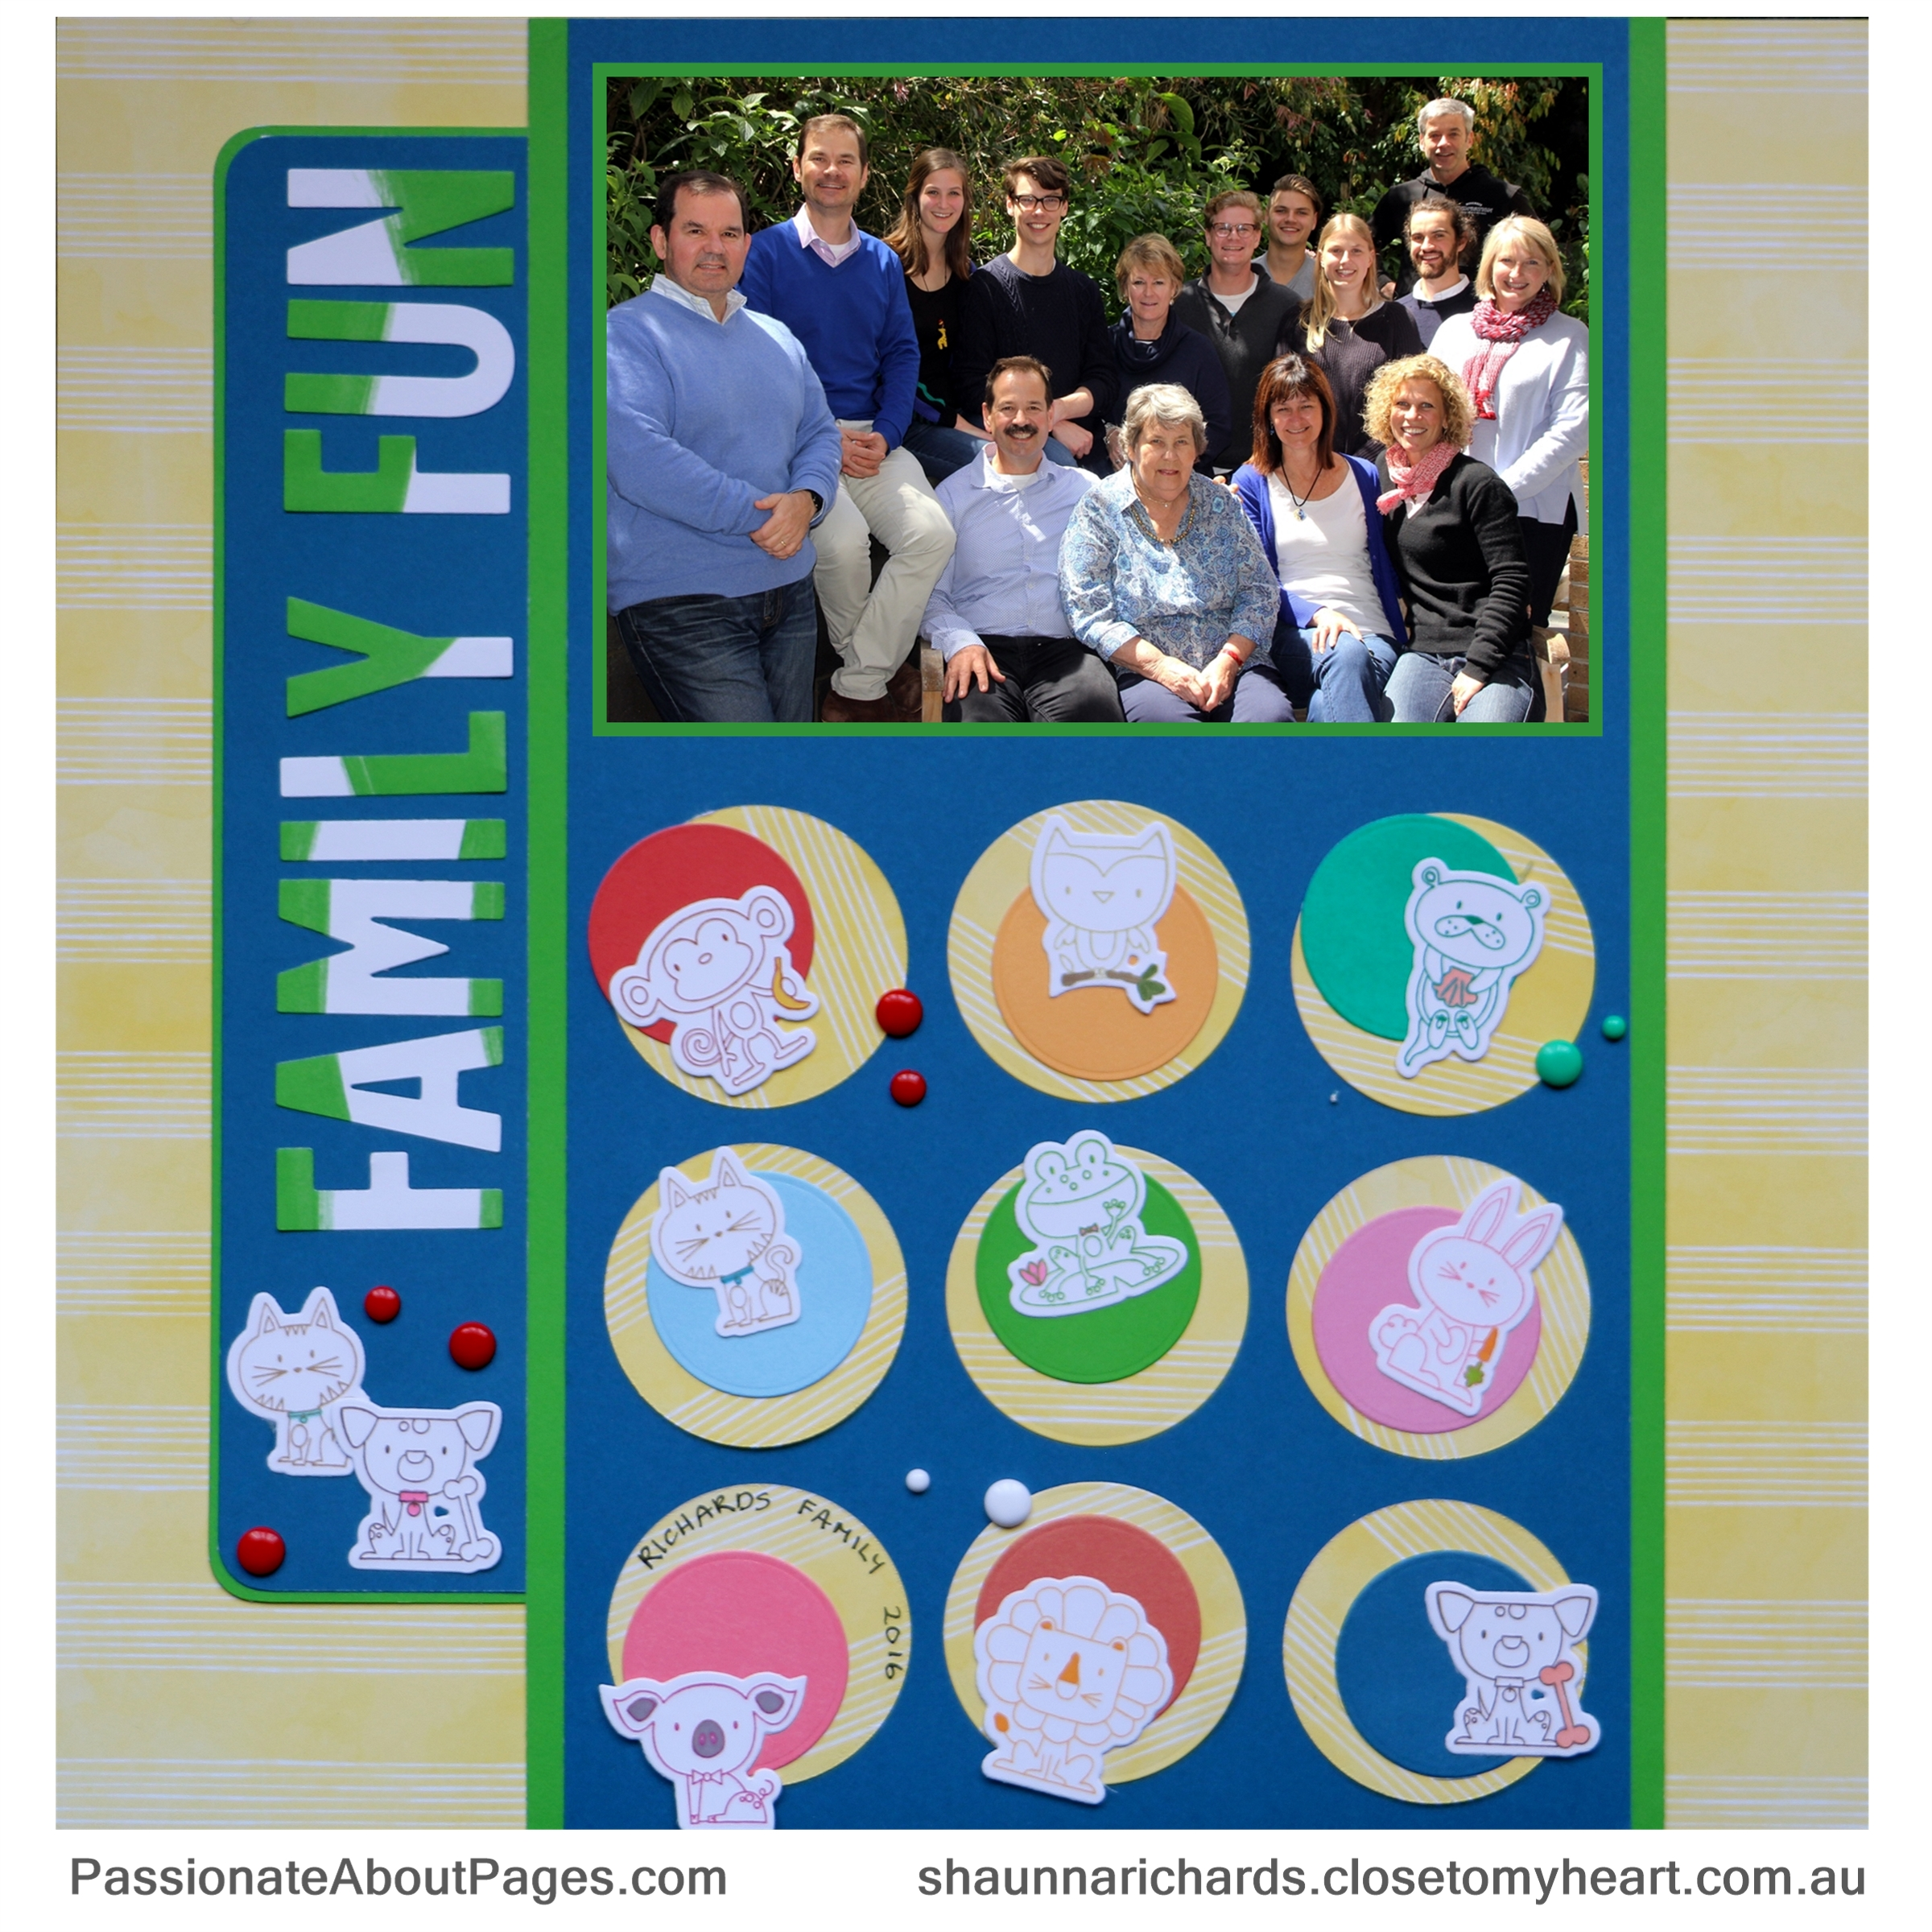 CTMH PUnny Pals Stamps help raise funds for Operation Smile while bringing joy to the crafters who use them. Order yours at www.shaunnarichards.ctmh.com.au